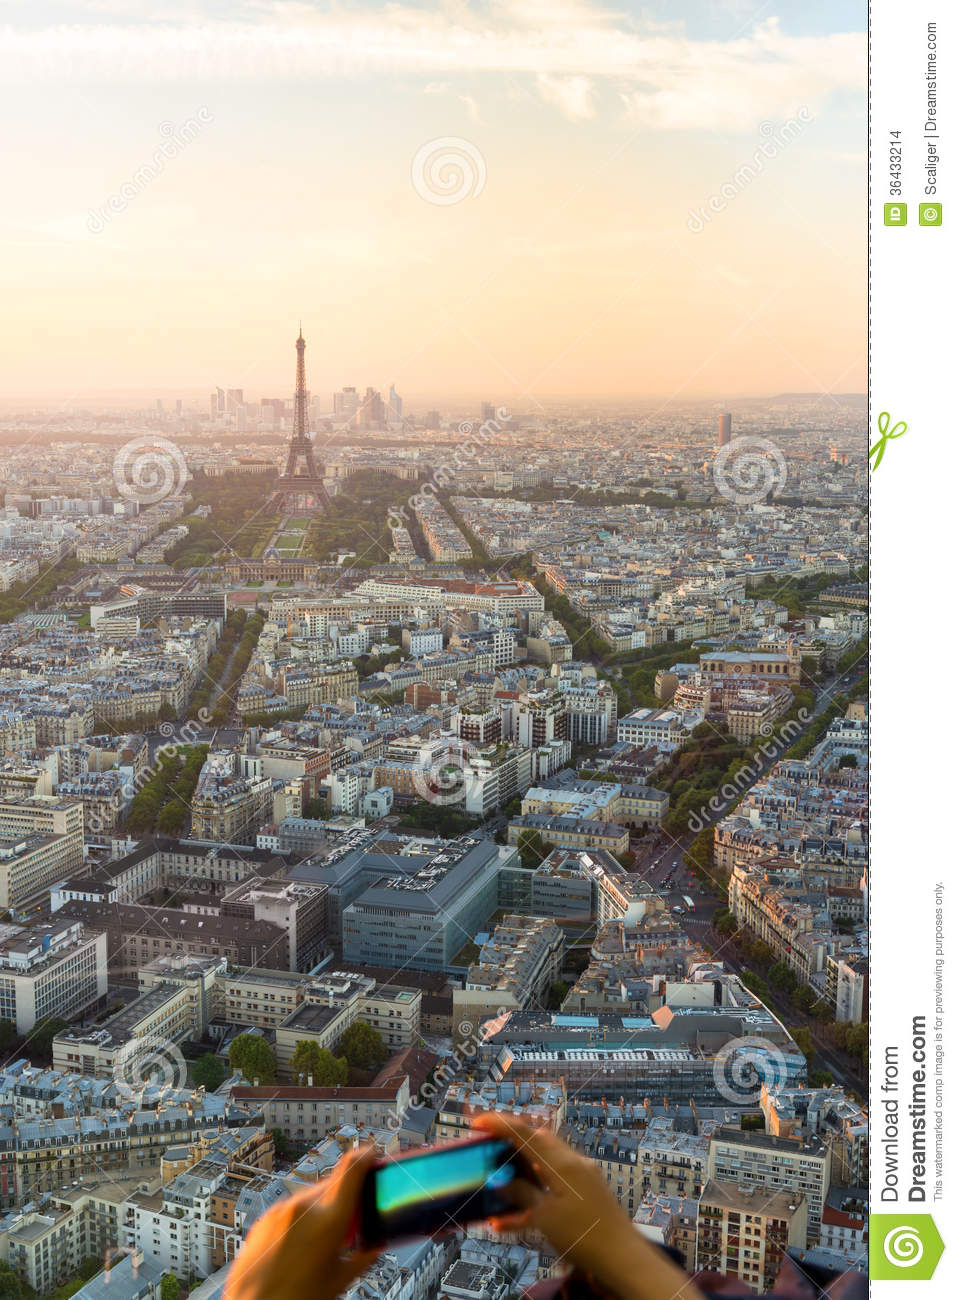 tourists take pictures of cityscape of paris on a mobile phone stock images image 36433214. Black Bedroom Furniture Sets. Home Design Ideas